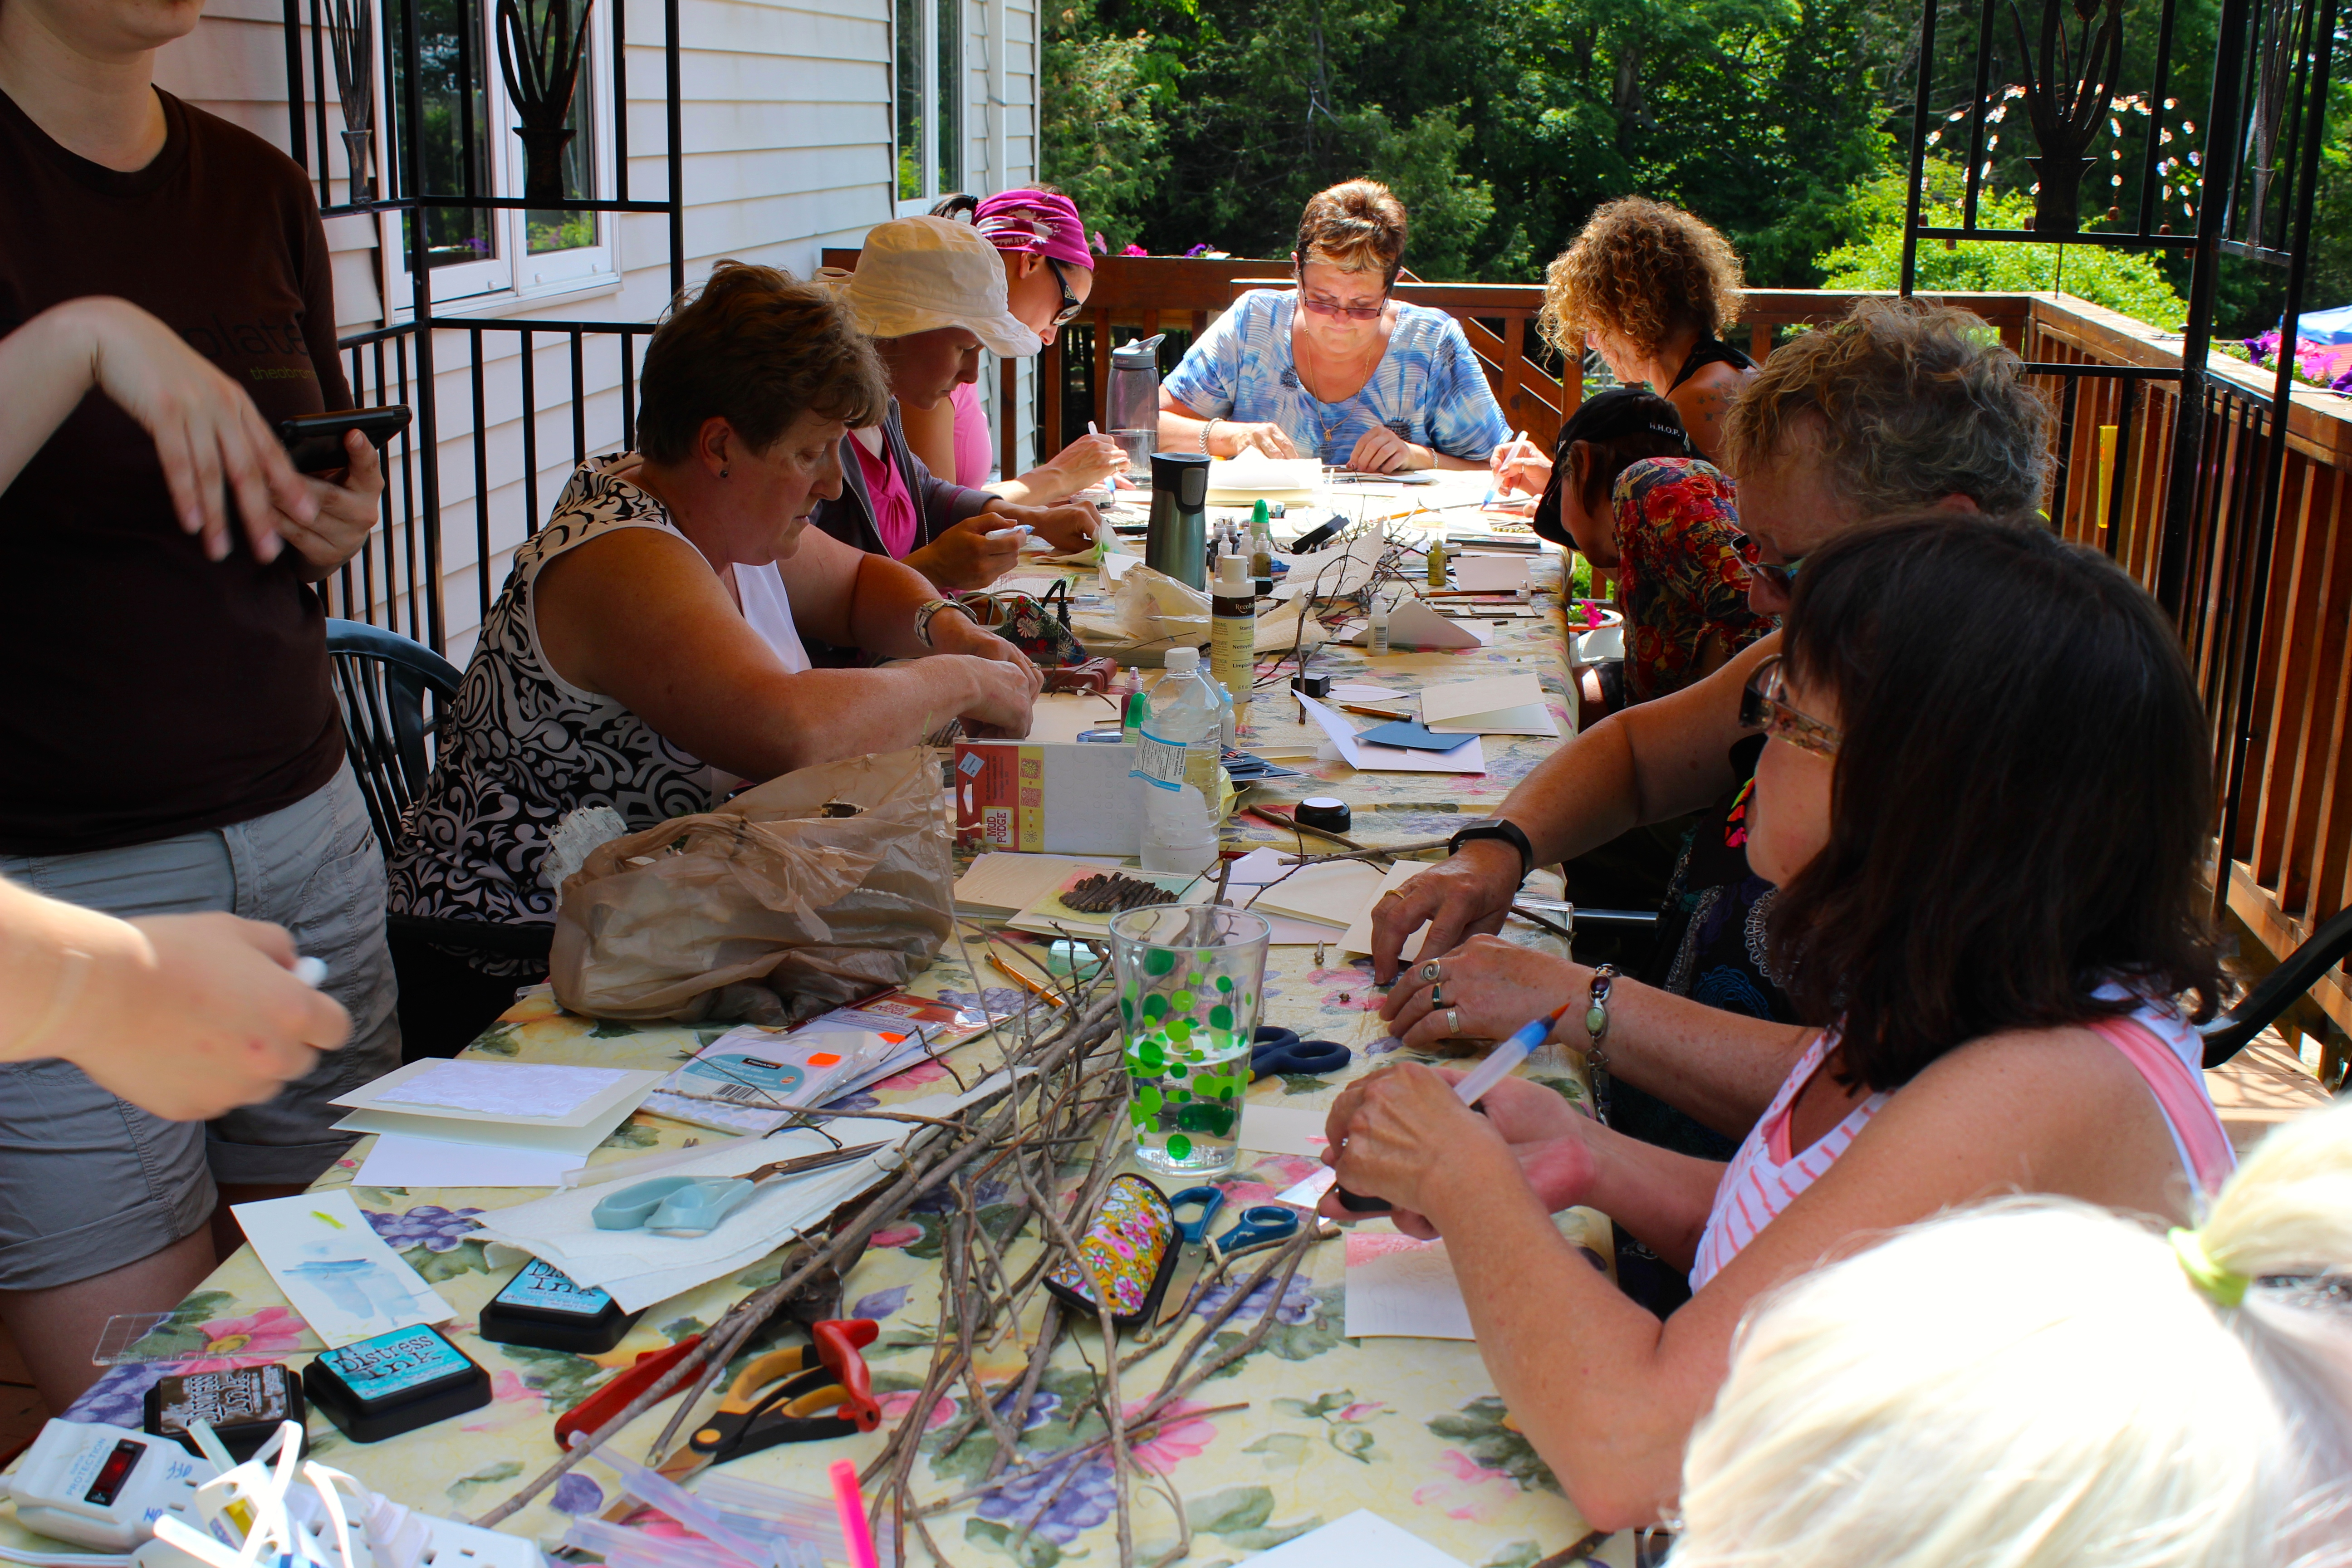 Crafts at the Women's Outdoor Weekend at Gordon's Park on Manitoulin Island